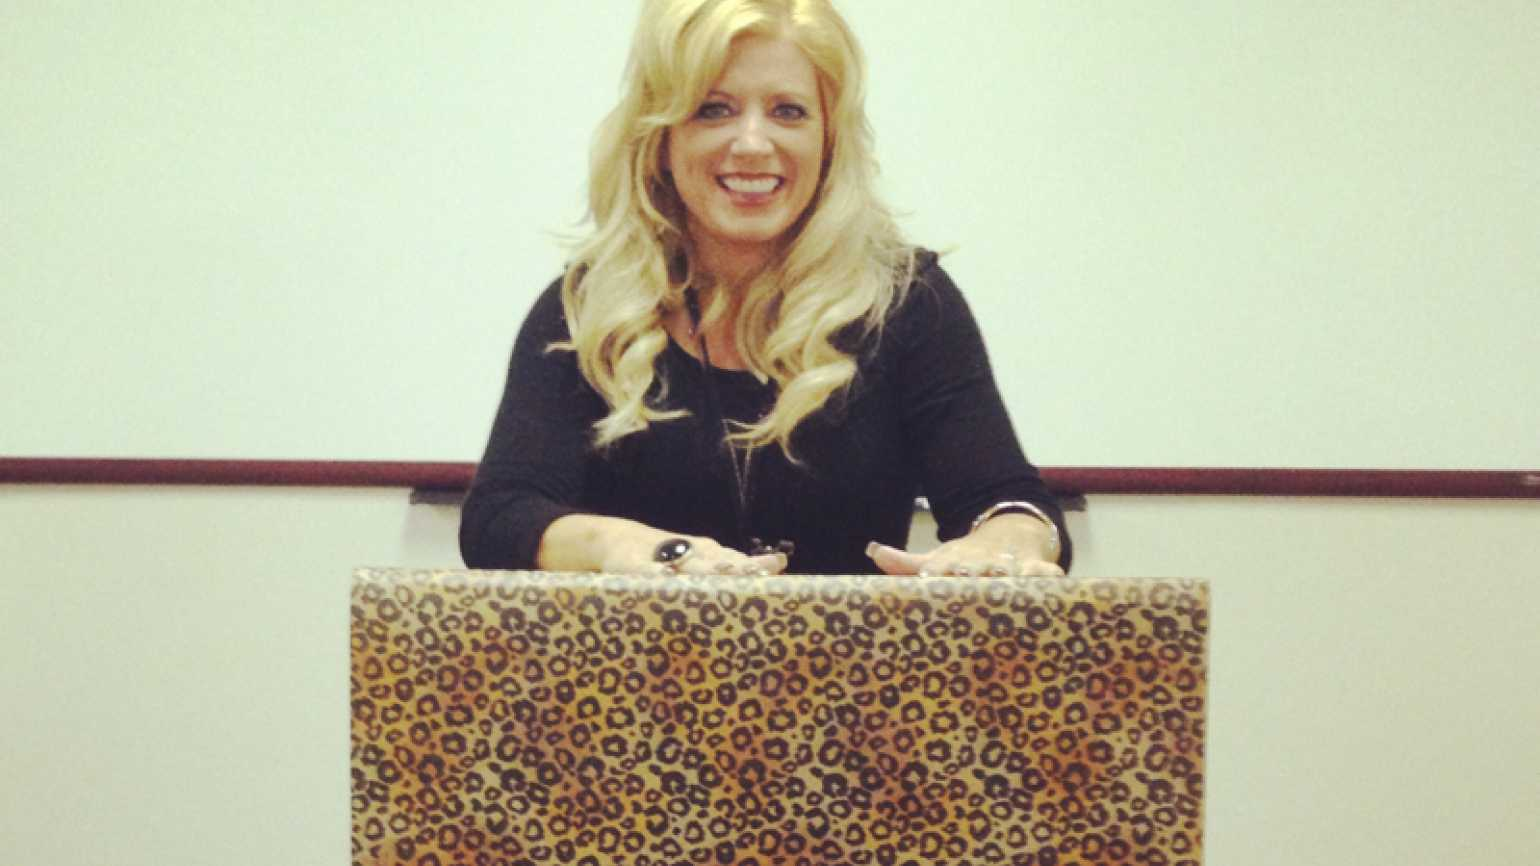 Inspirational Stories blogger Michelle Medlock Adams at a leopard print podium